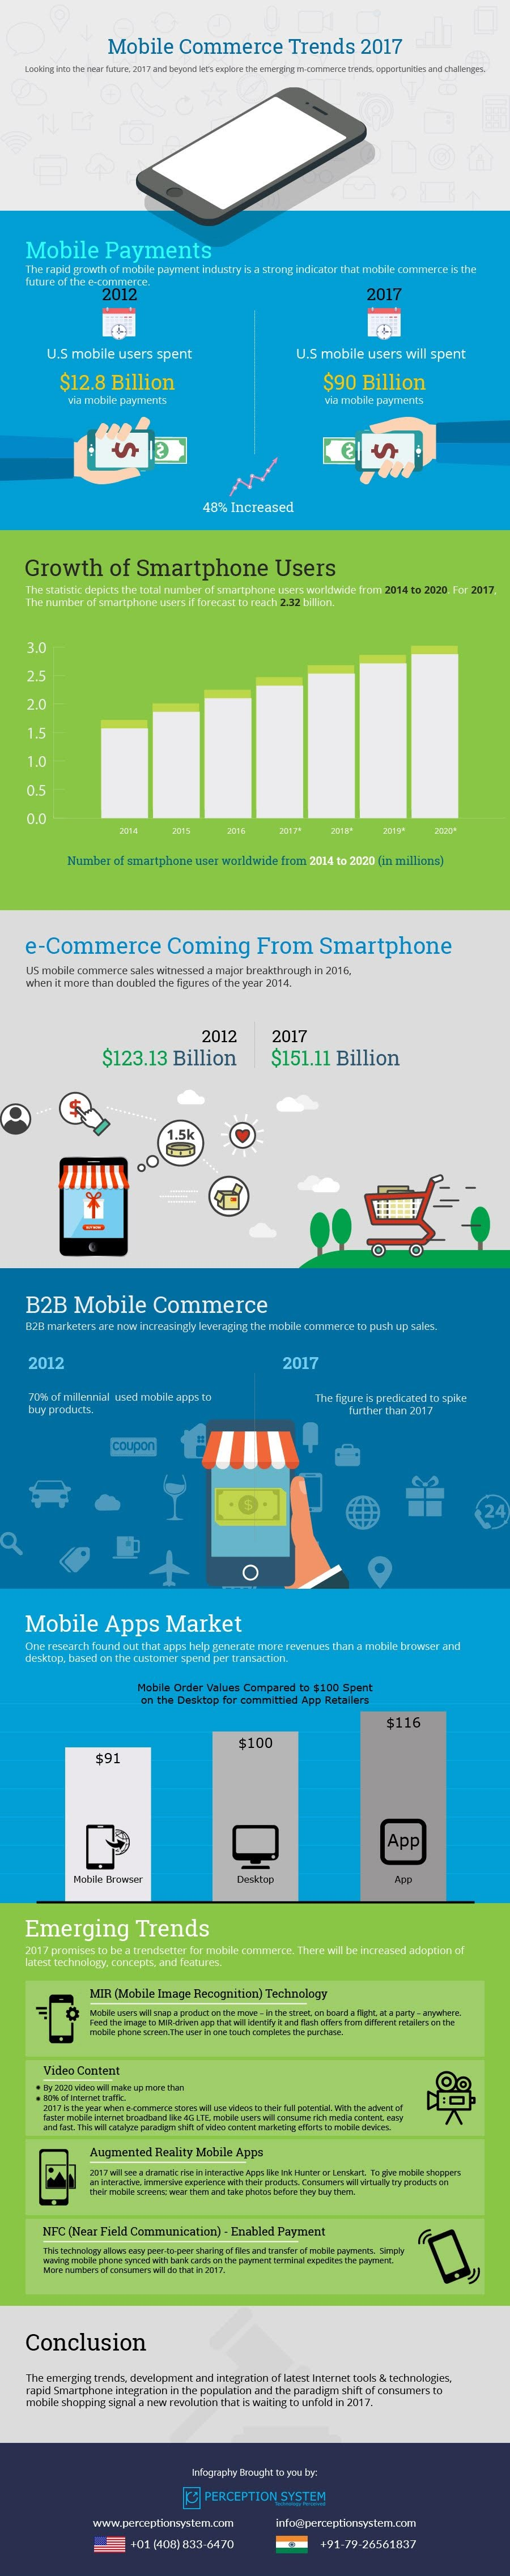 Top Mobile Commerce Trends For 2017 #infographic